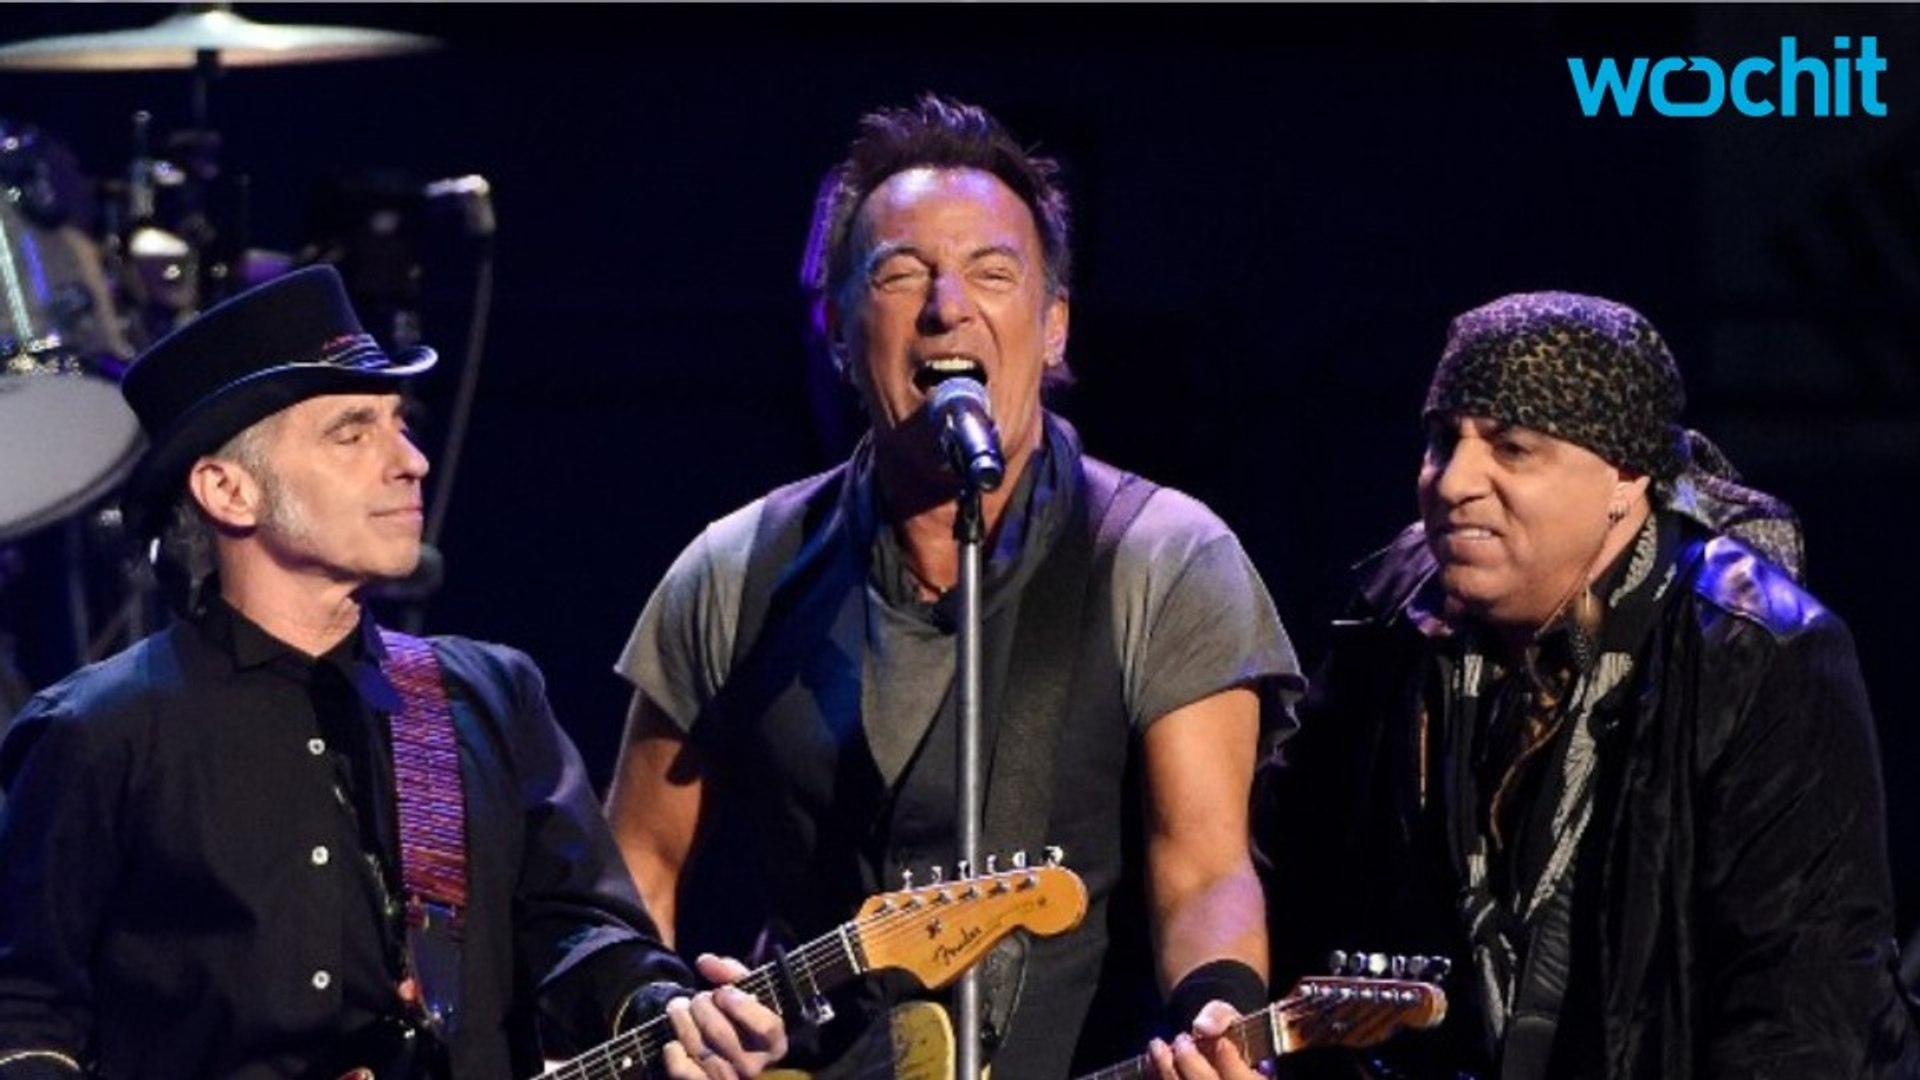 Bruce Springsteen Sets New Concert Record